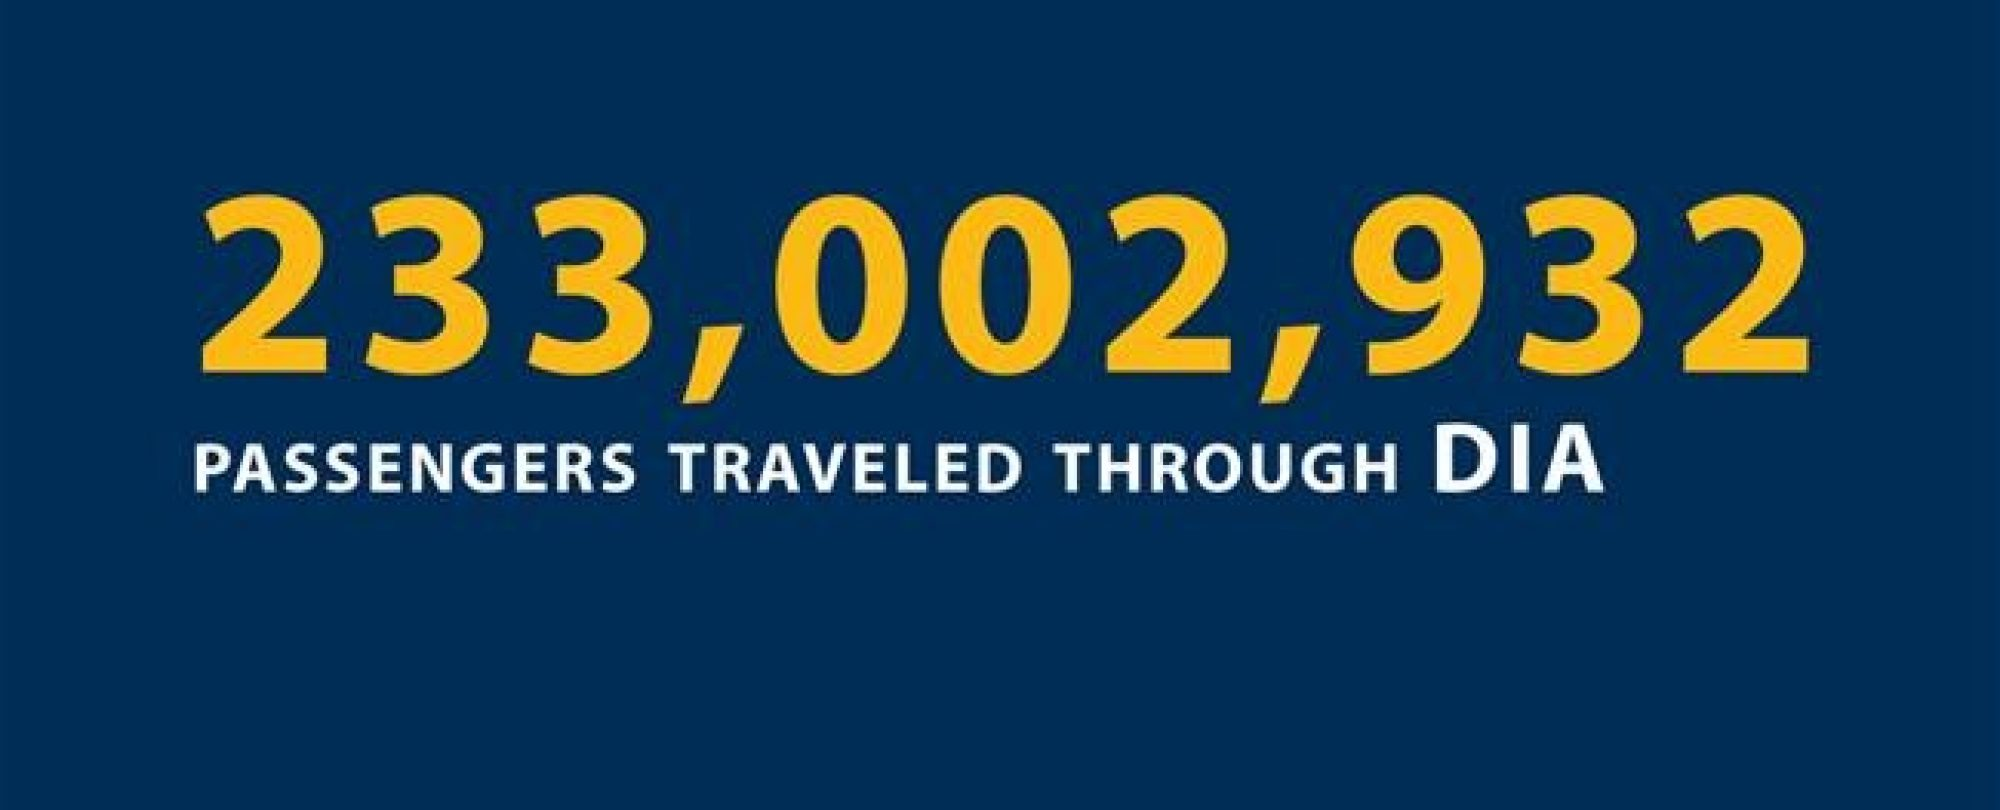 233,002,932 passengers traveled through DIA